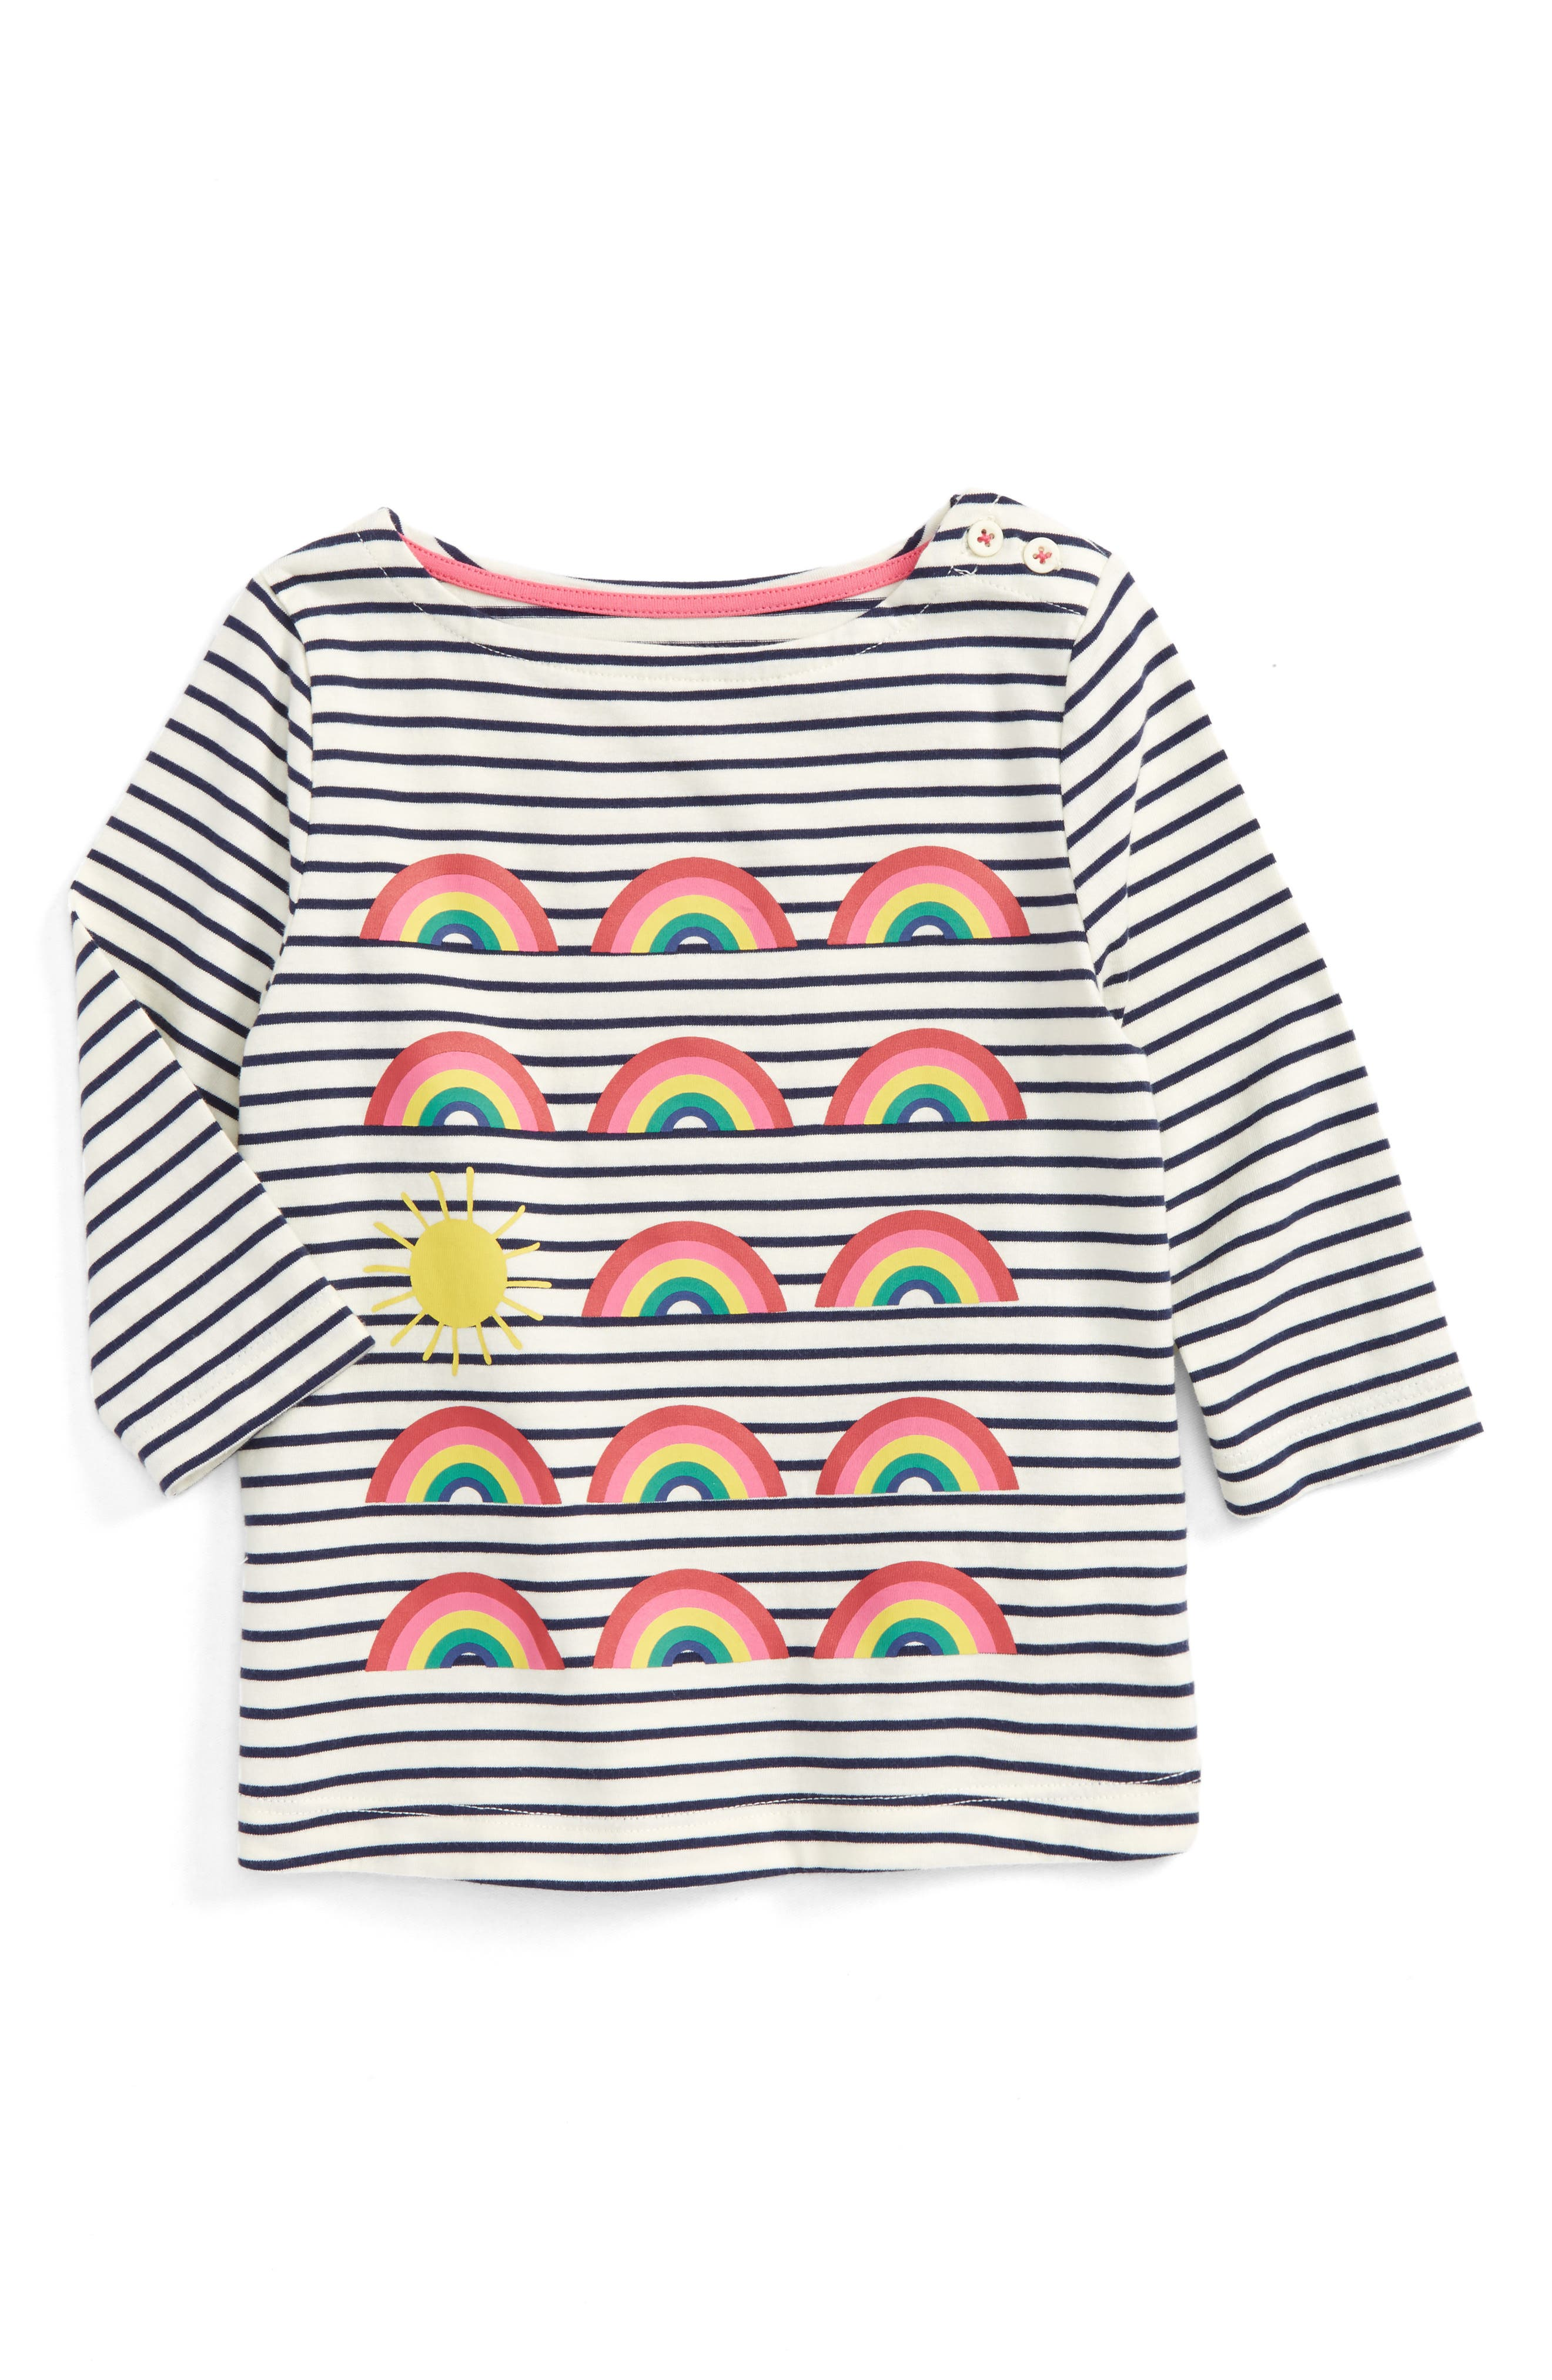 Odd One Out Graphic Tee,                             Main thumbnail 1, color,                             904